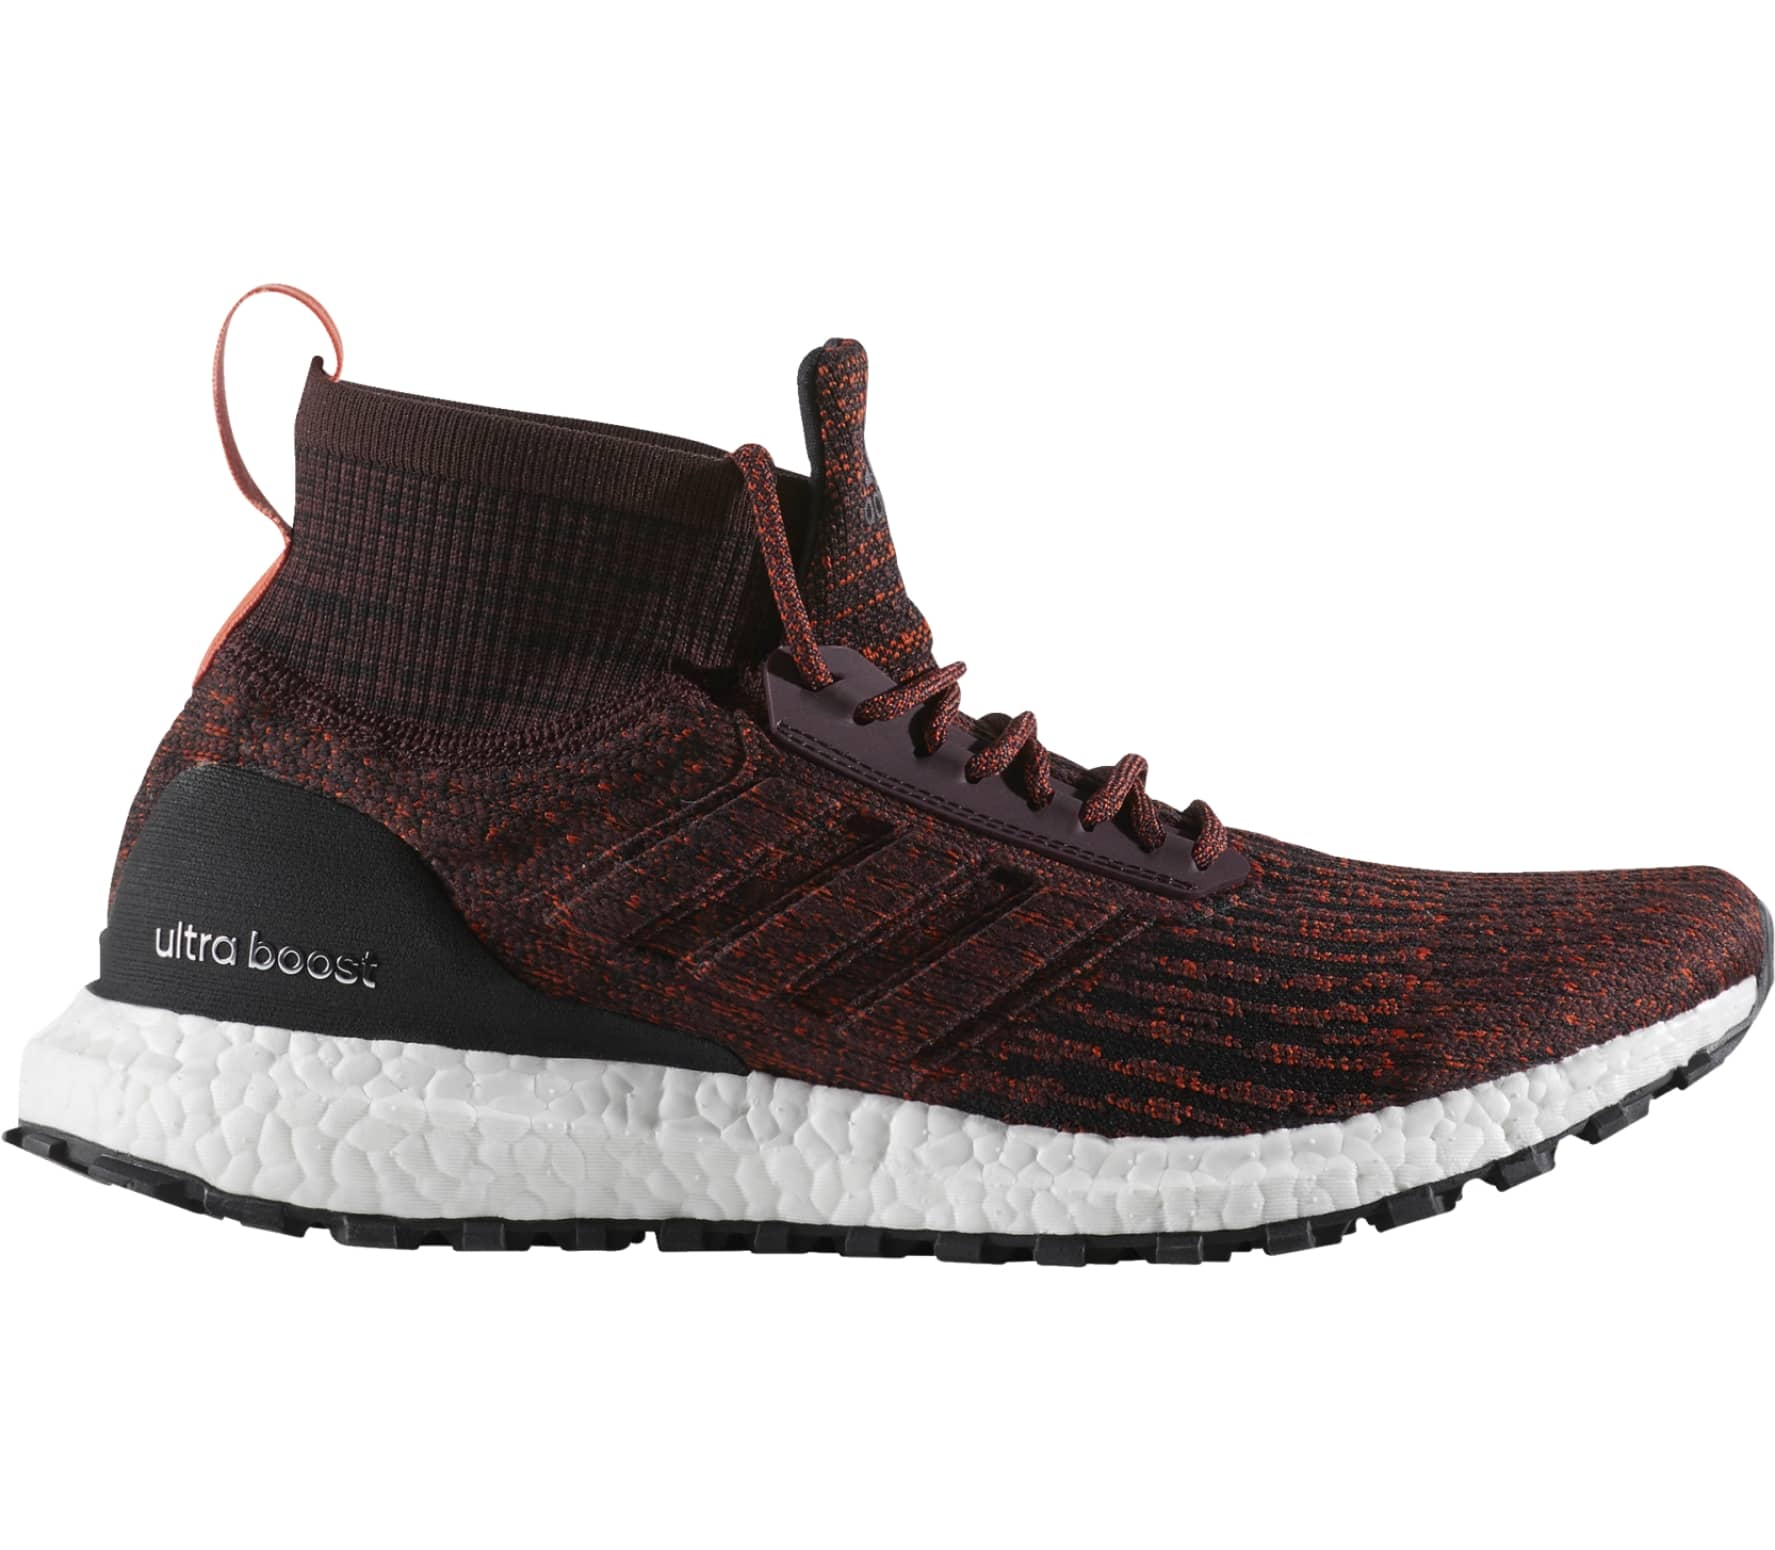 0b6e7c0f7 Adidas - Ultra Boost ATR men s running shoes (dark red black) - buy ...